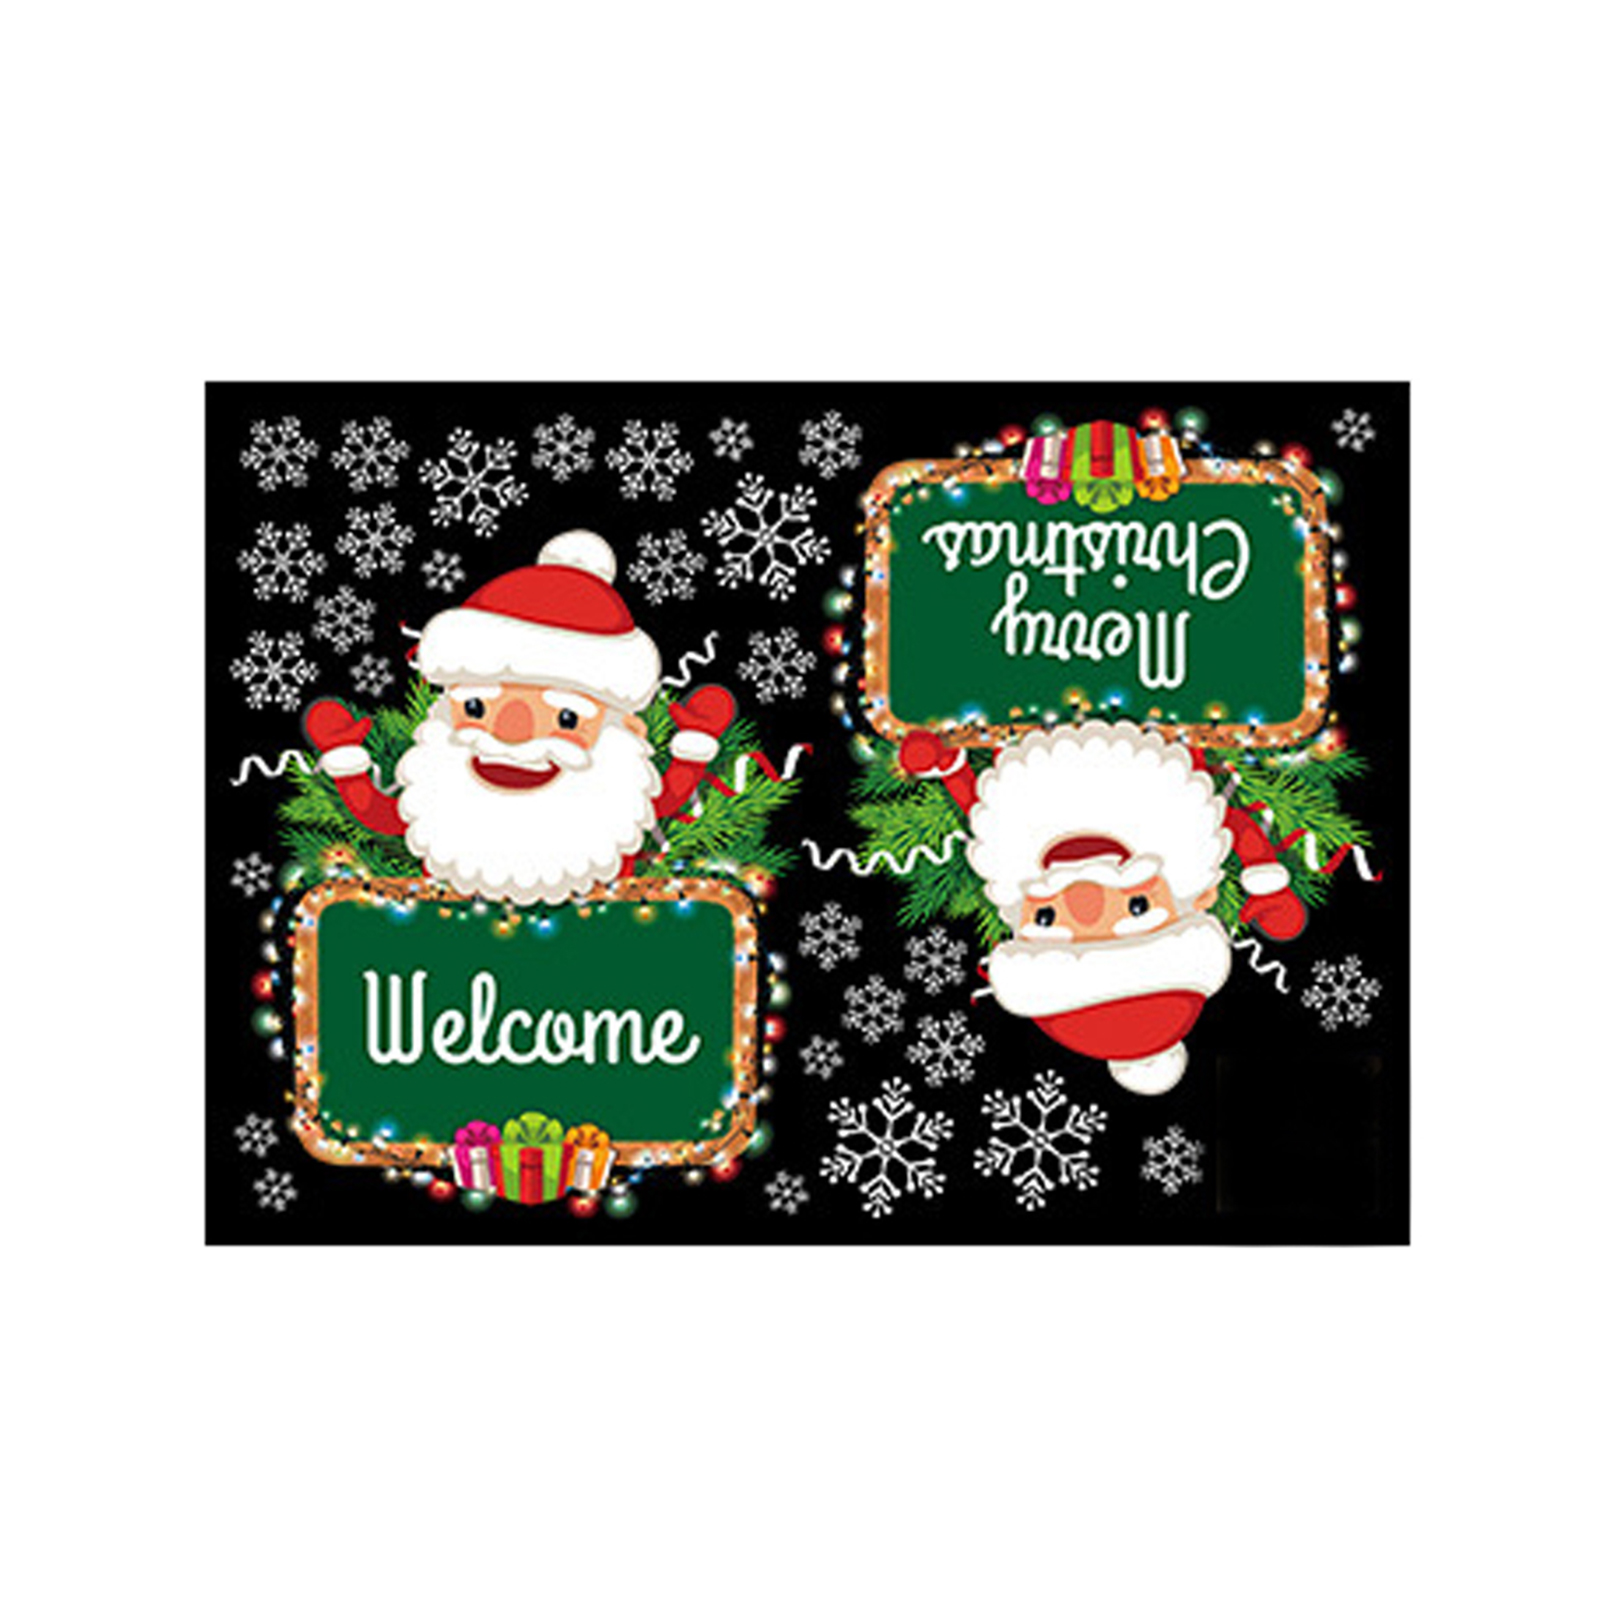 PVC Self Sticky Window Decals Home Decor Christmas Door Sticker New Year Winter Waterproof DIY Wall Removable Kids Room Funny